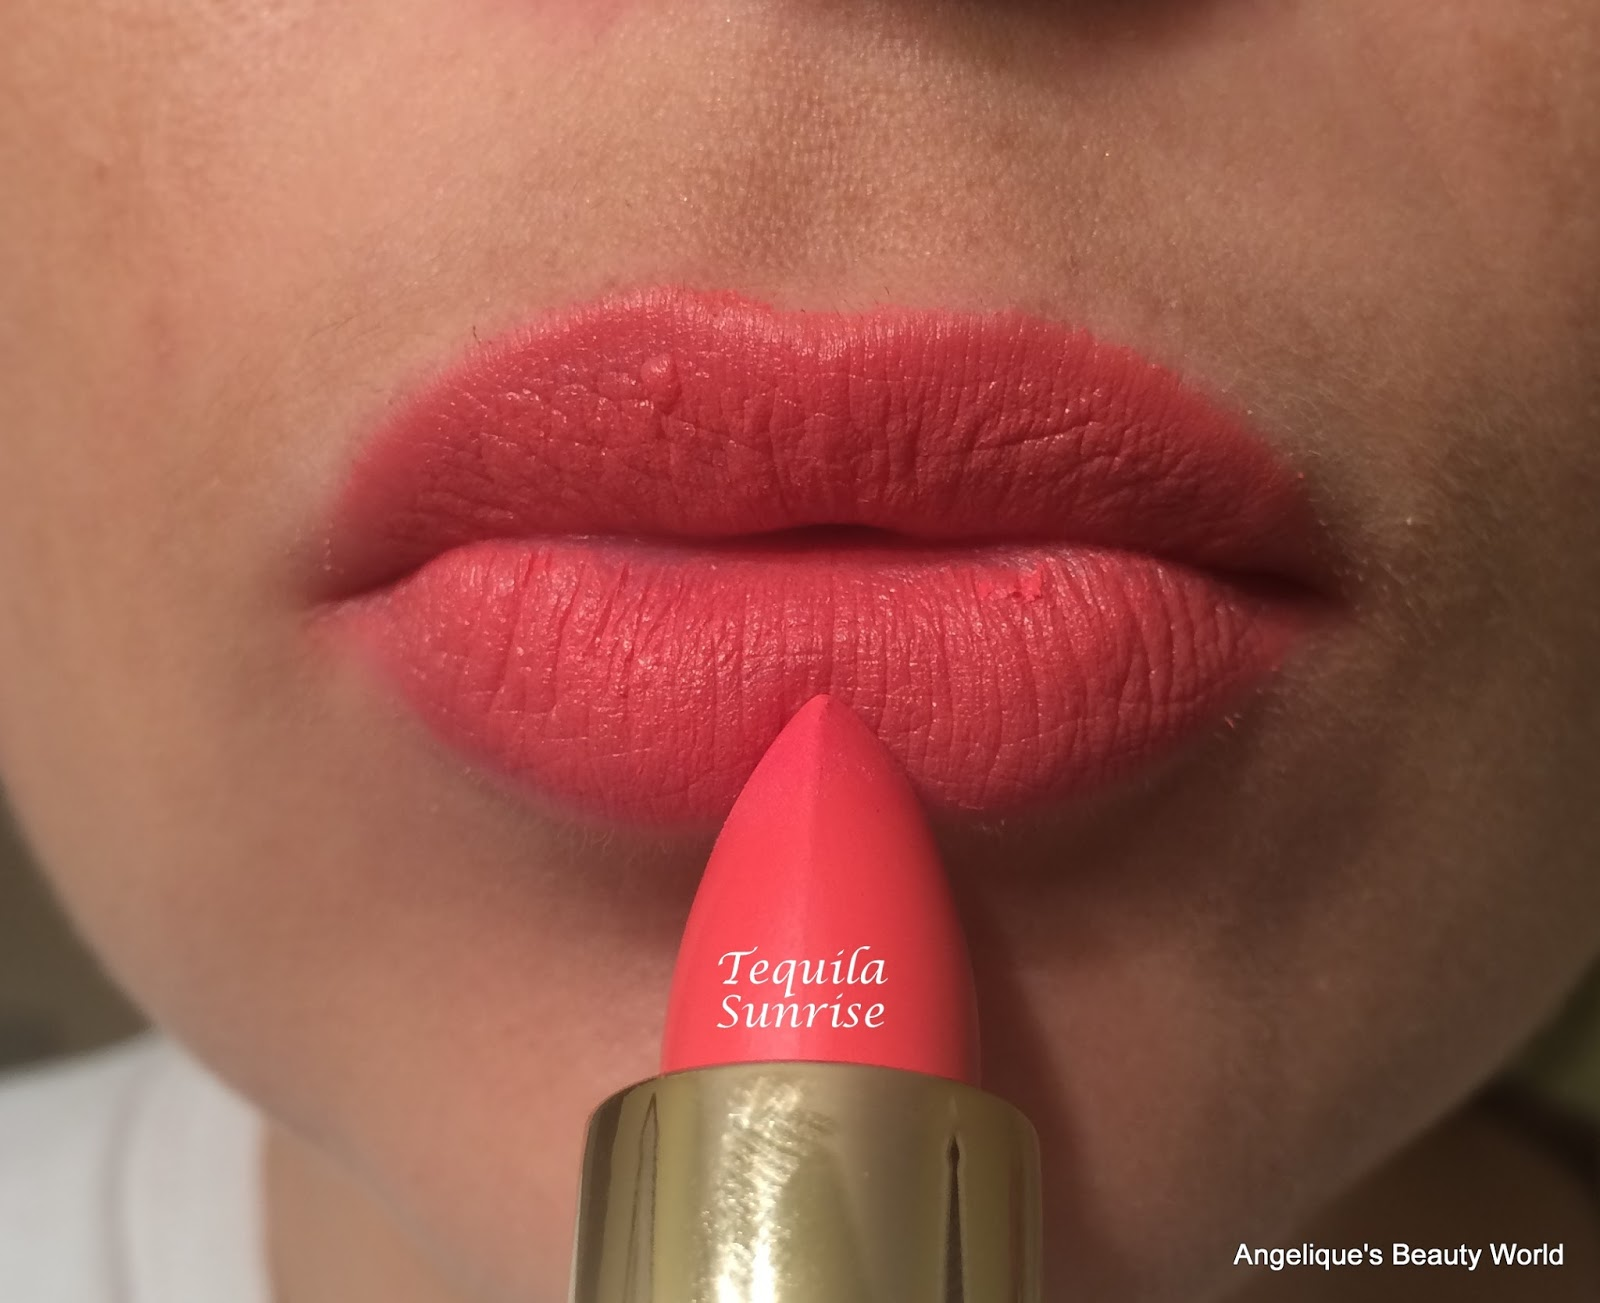 Gerard Cosmetics A Review Angeliques Beauty World City Color Creamy Lips Fifth Is Tequila Sunrise And One Of The Few Orangey Lip Colors I Own Im Always Afraid That These Type Will Make My Teeth Look Yellow